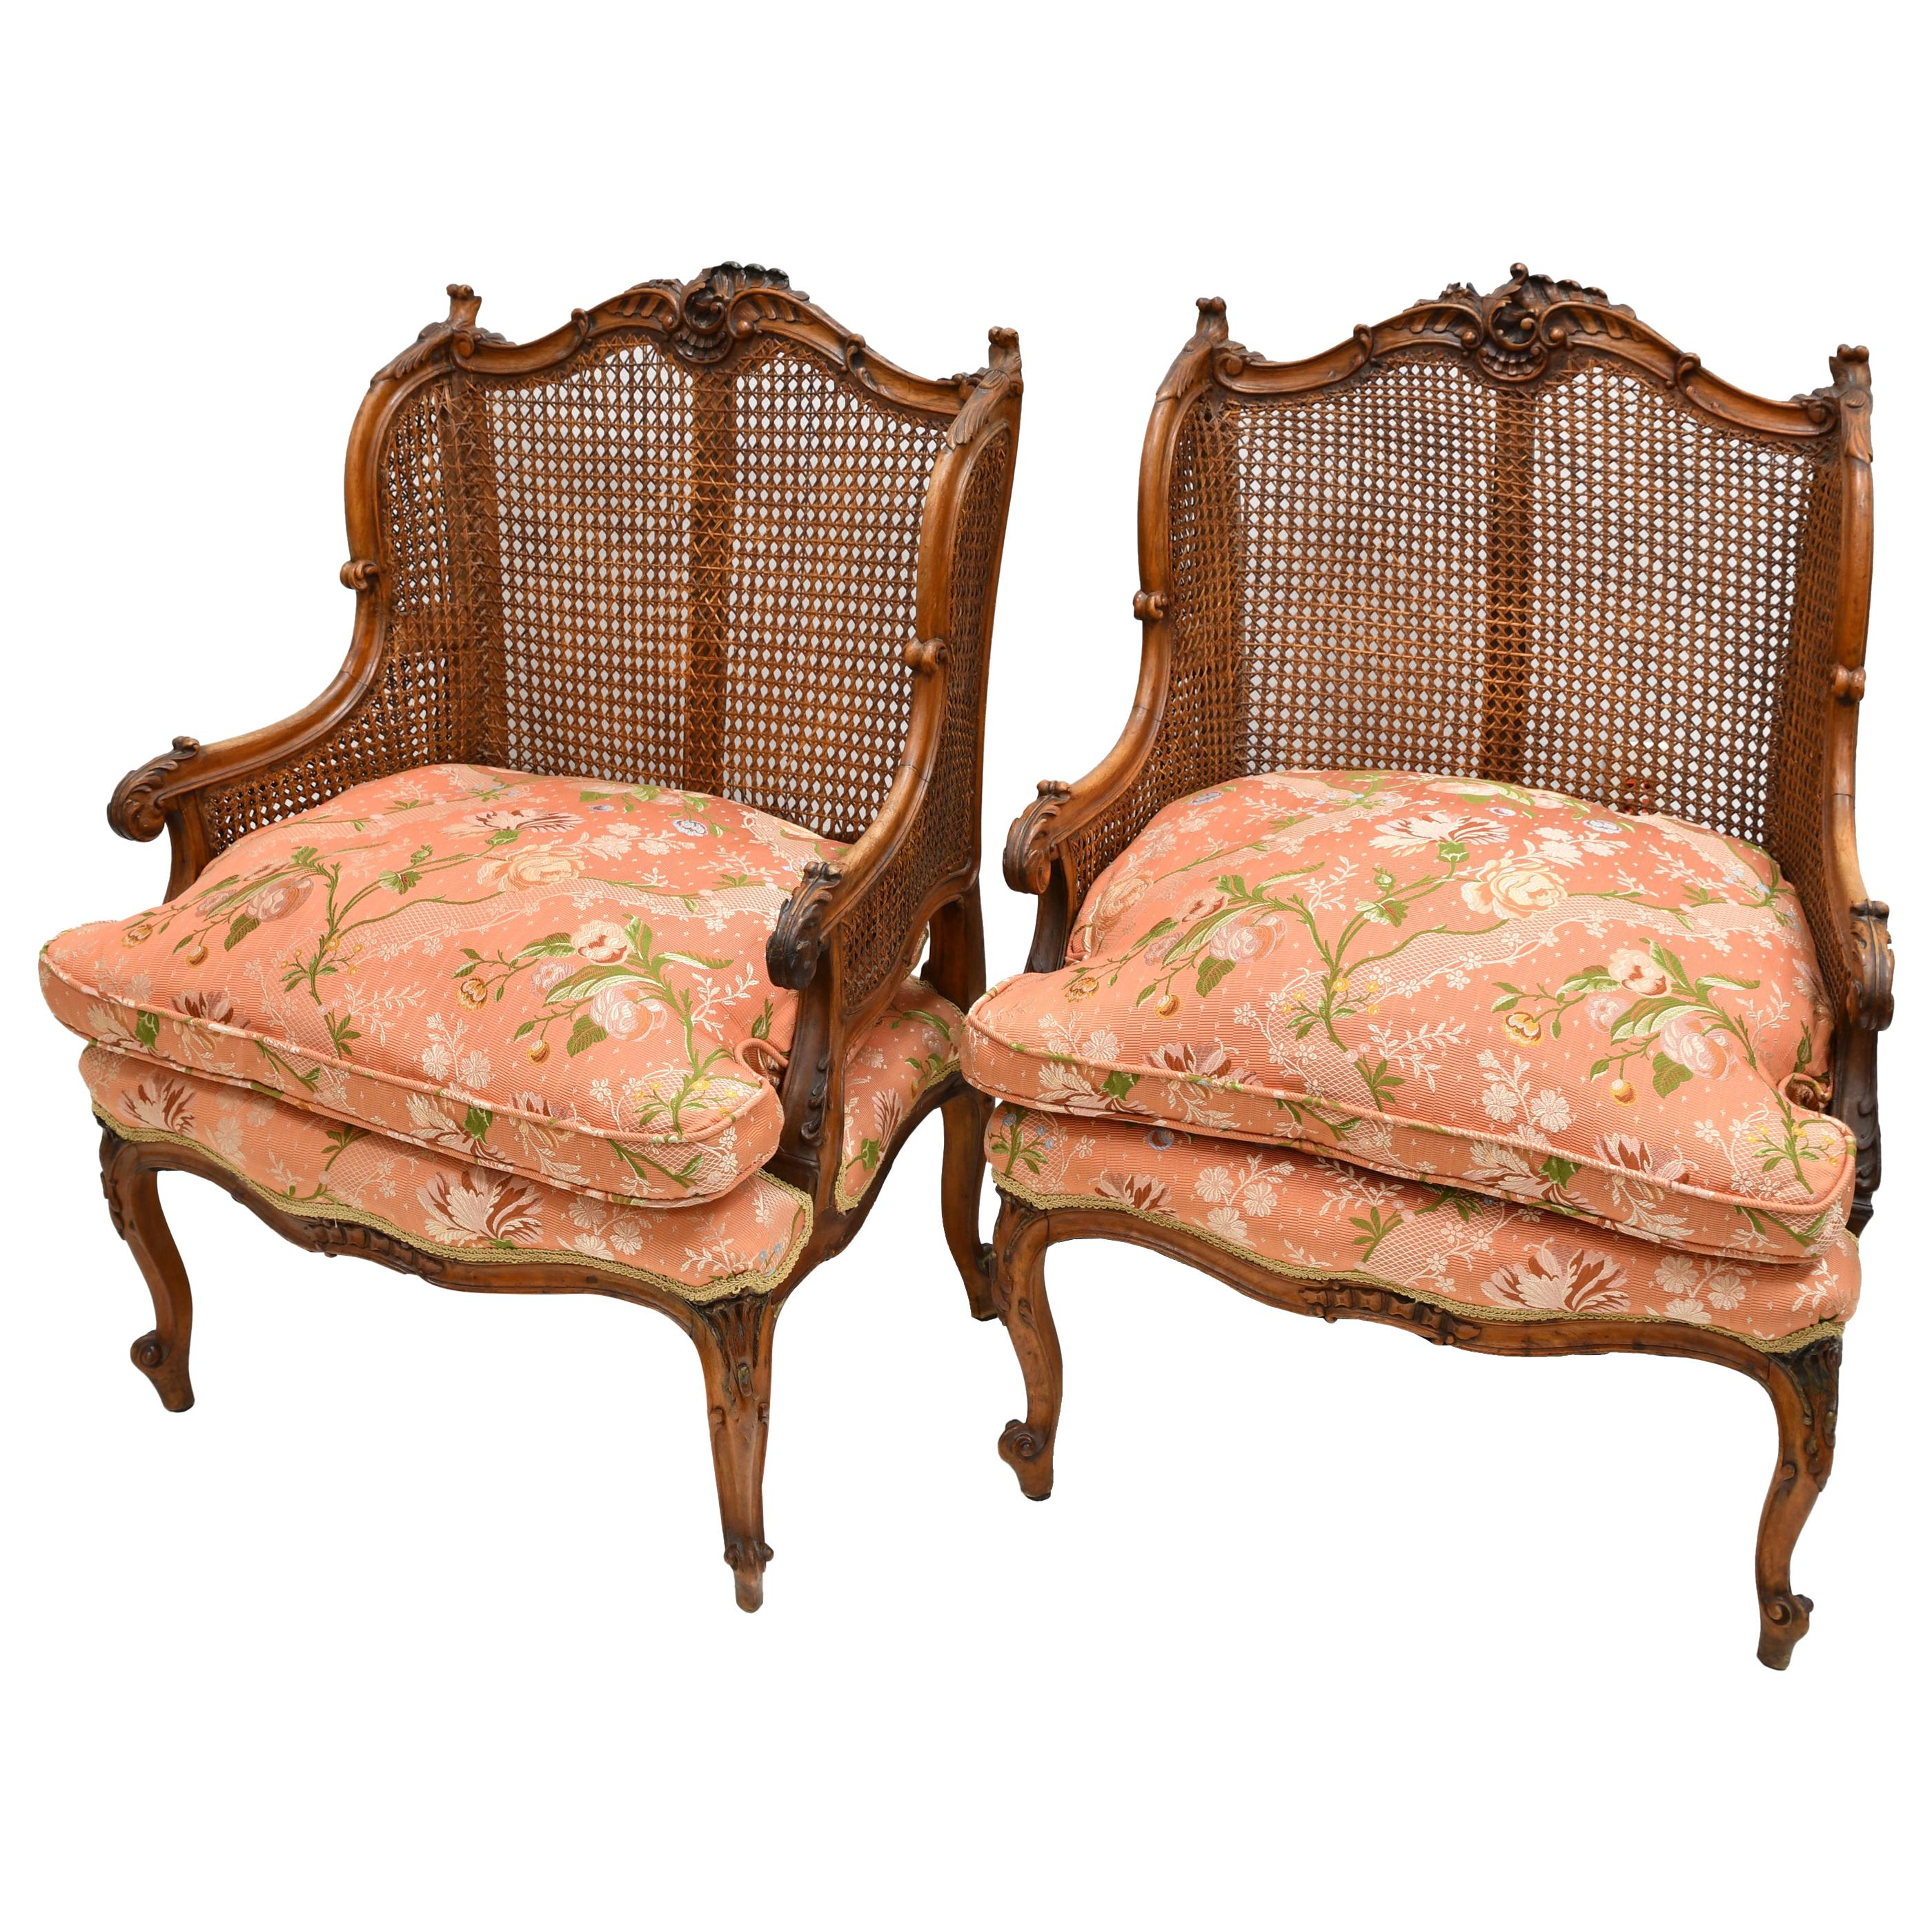 Pair of Antique French Louis XV Style Bergères/Armchairs w/ Caning & Upholstery